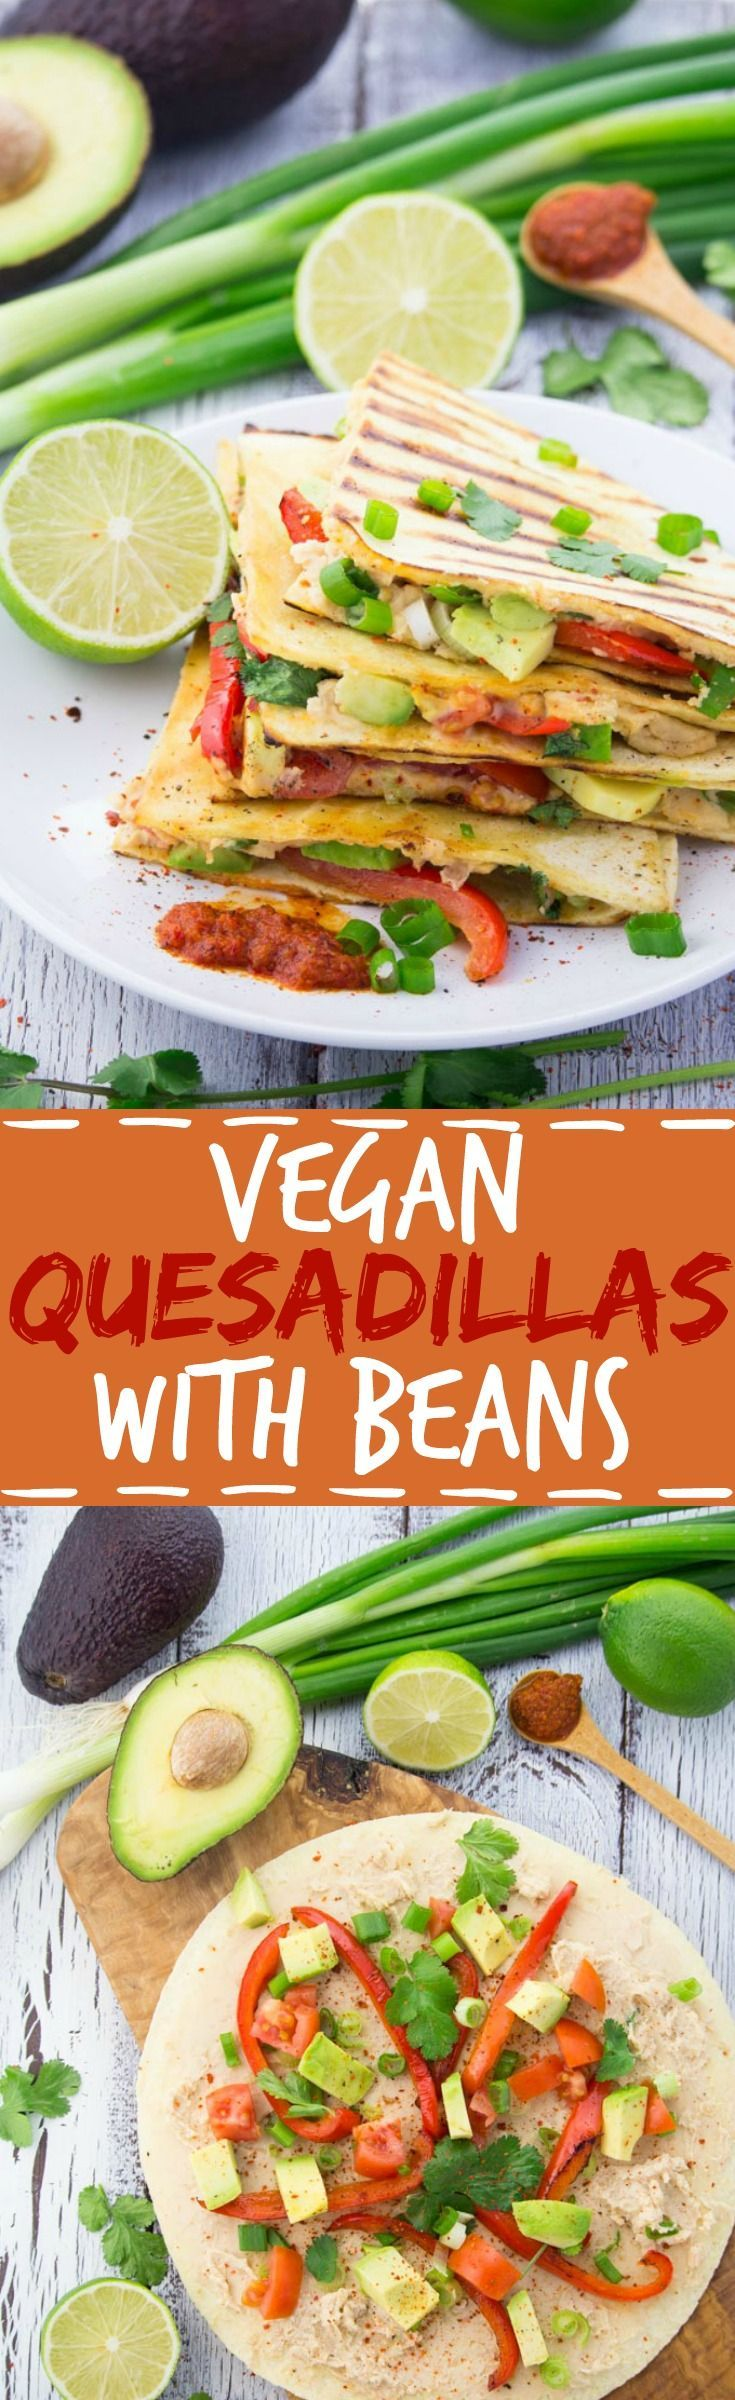 These vegan quesadillas are packed with flavor, minus all the fat from cheese! They're made with white beans and get their cheesy taste from nutritional yeast and miso paste.#vegan #food #quesadillas